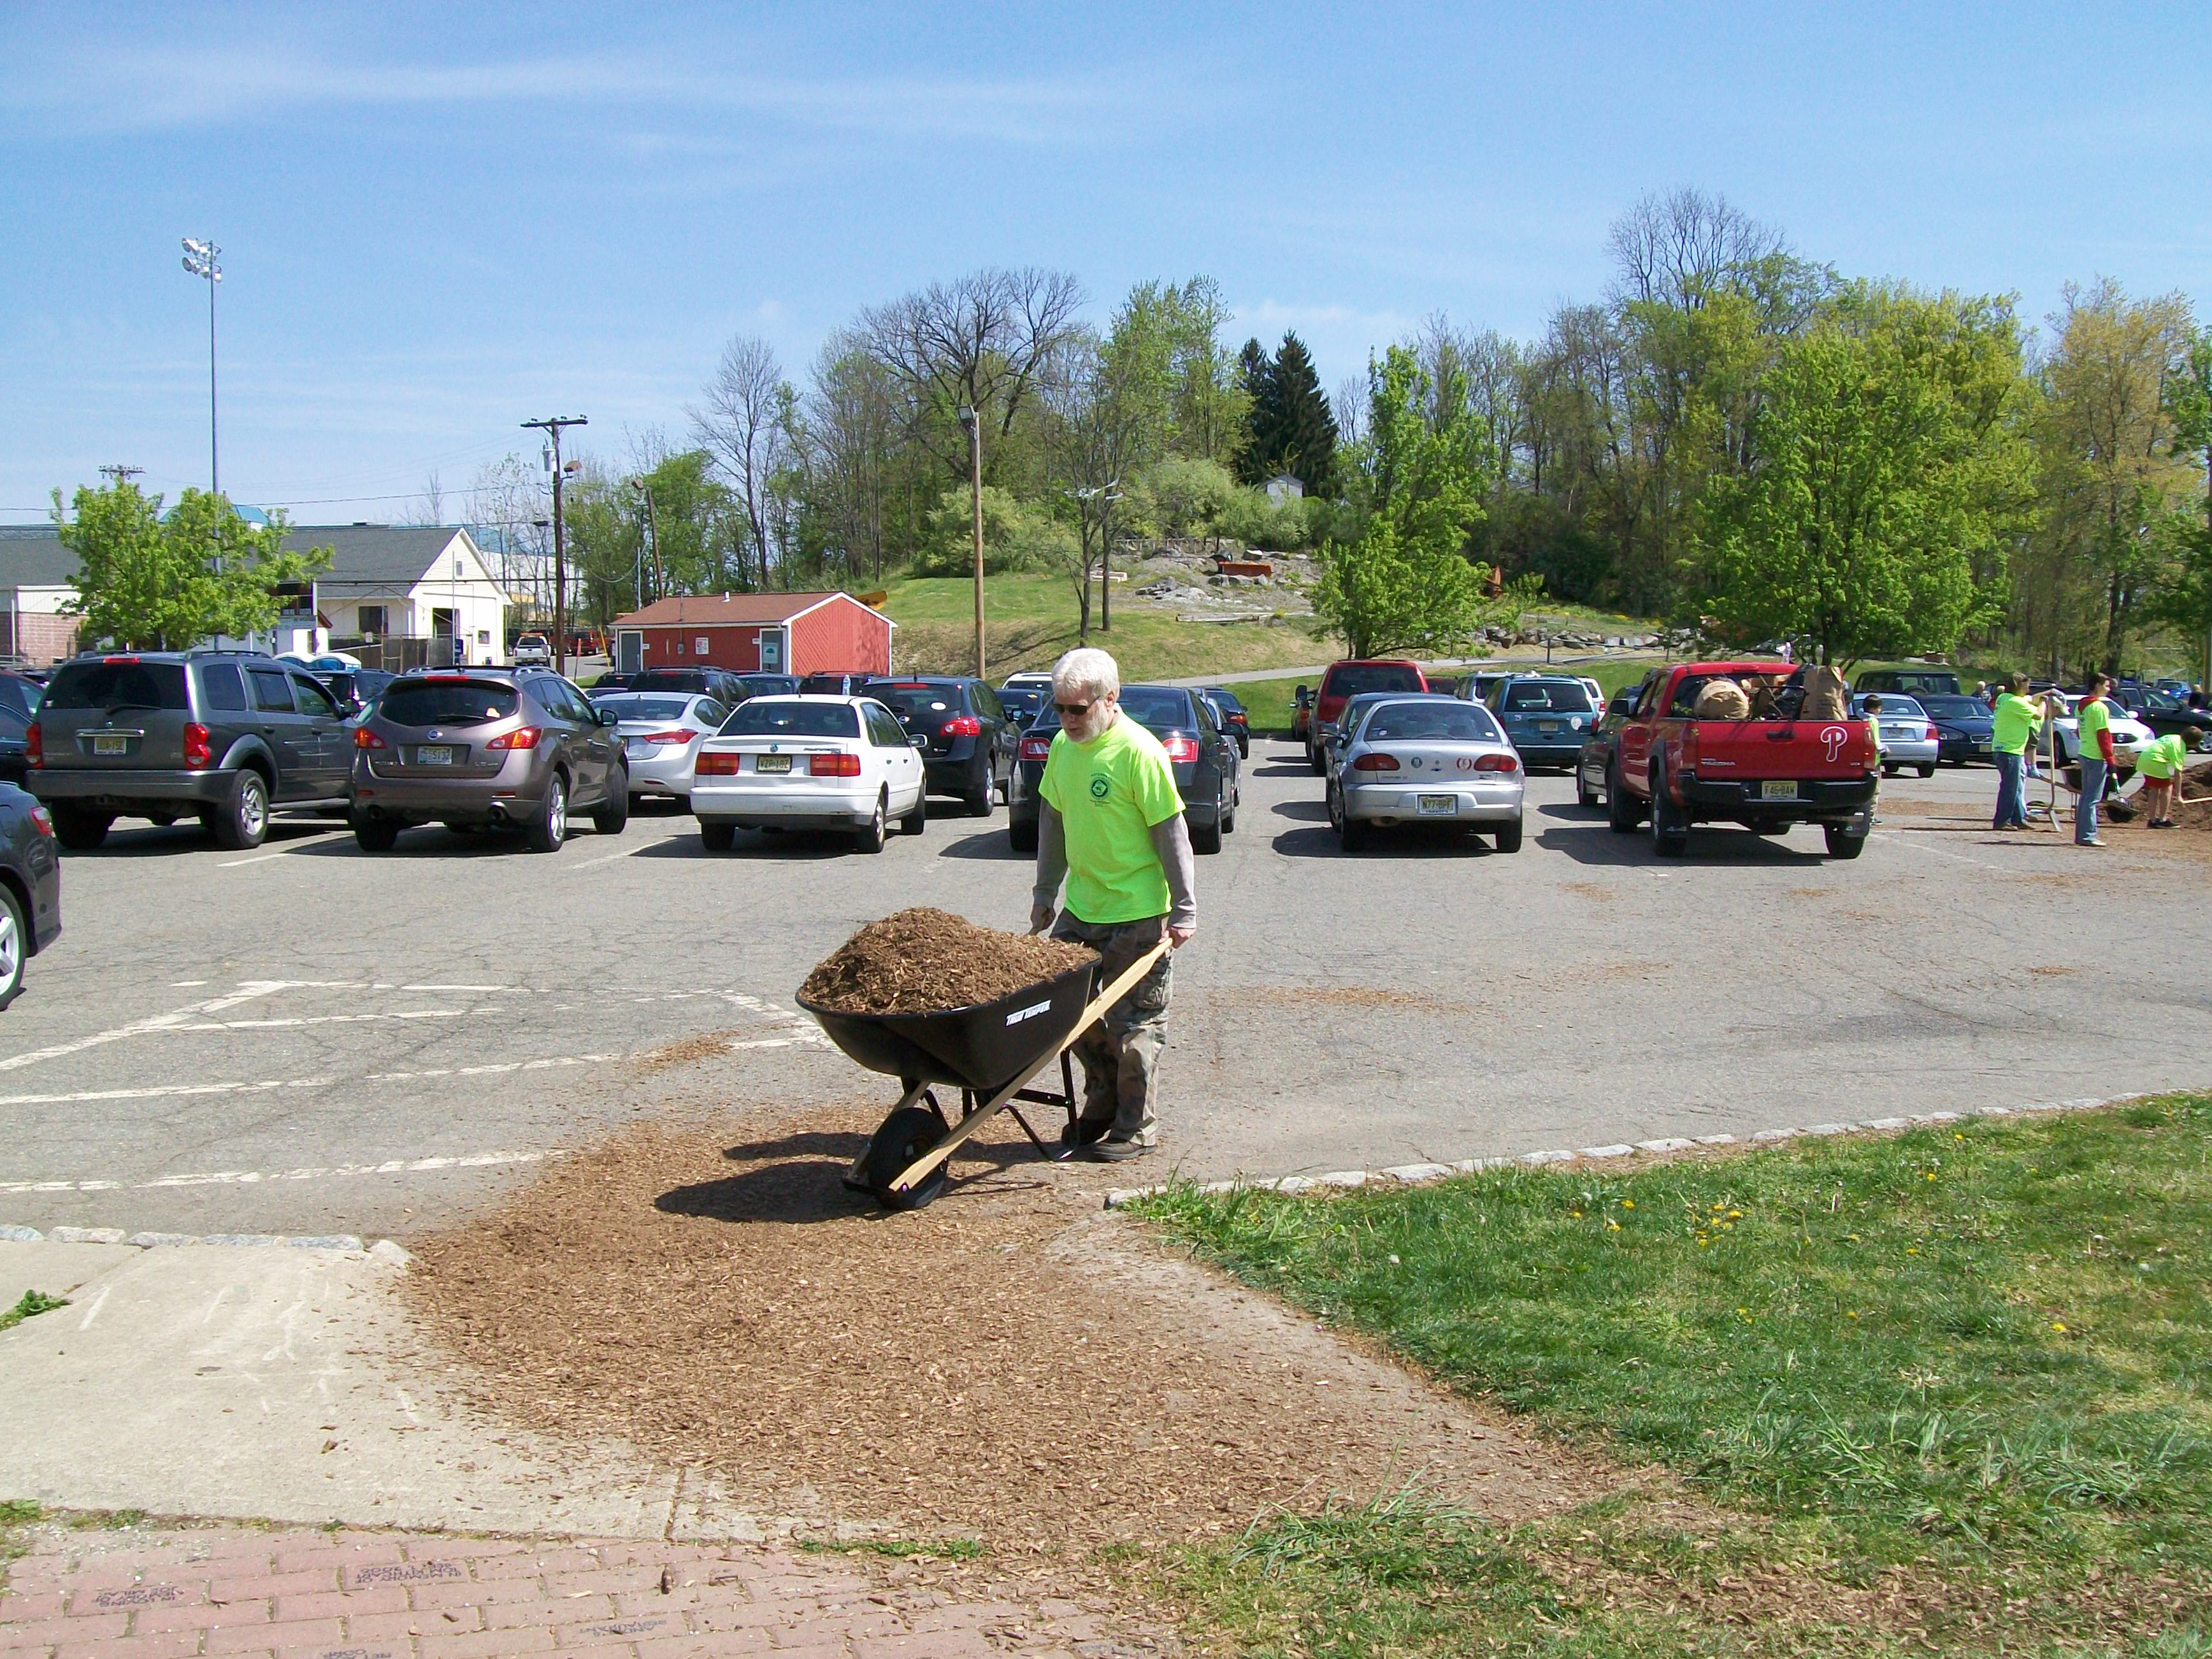 Memory Park - Spreading mulch on the playground